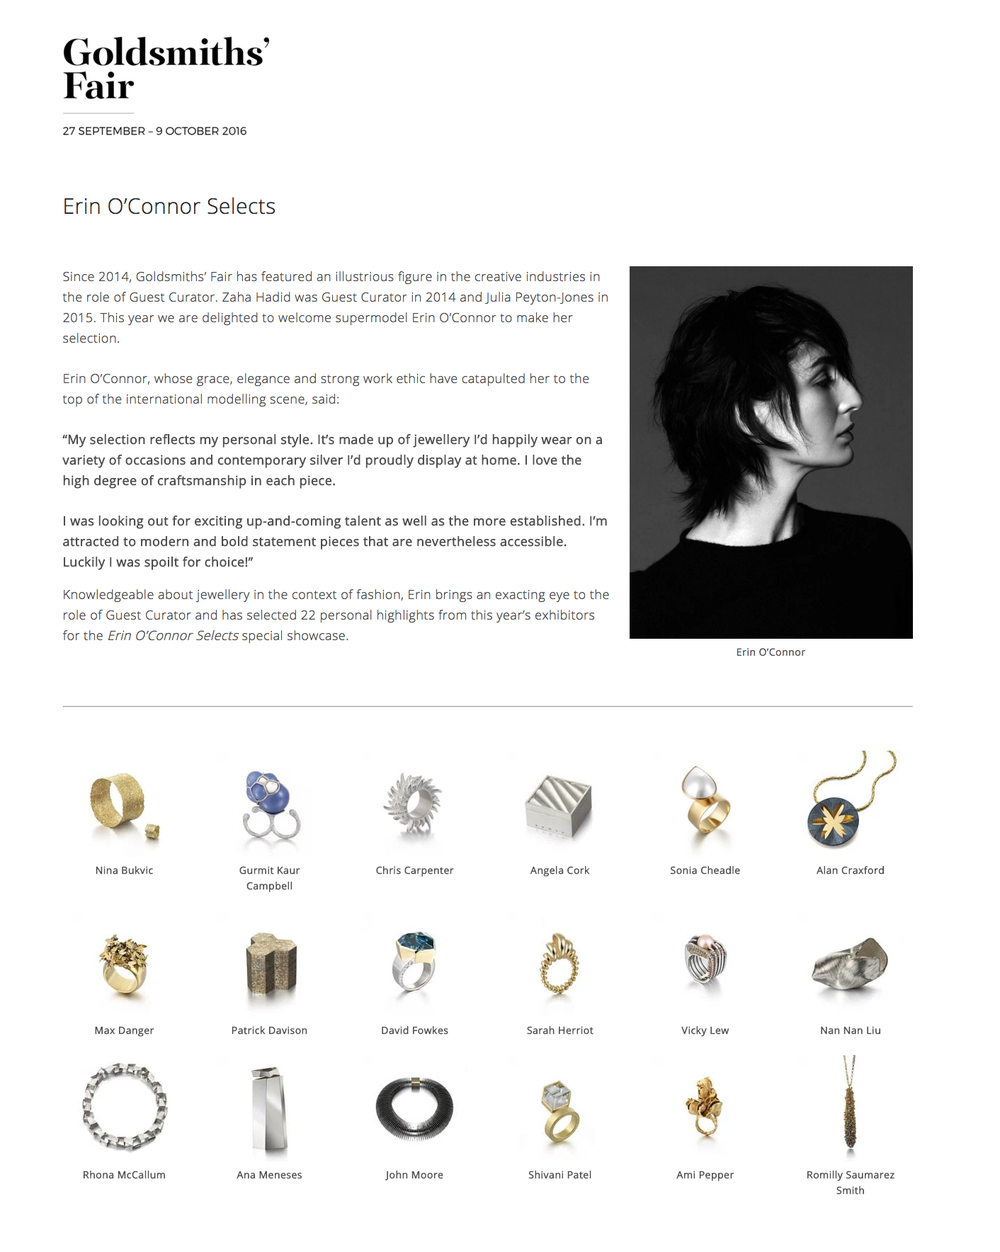 Vicky Lew London Press - Goldsmiths' Fair 16.png